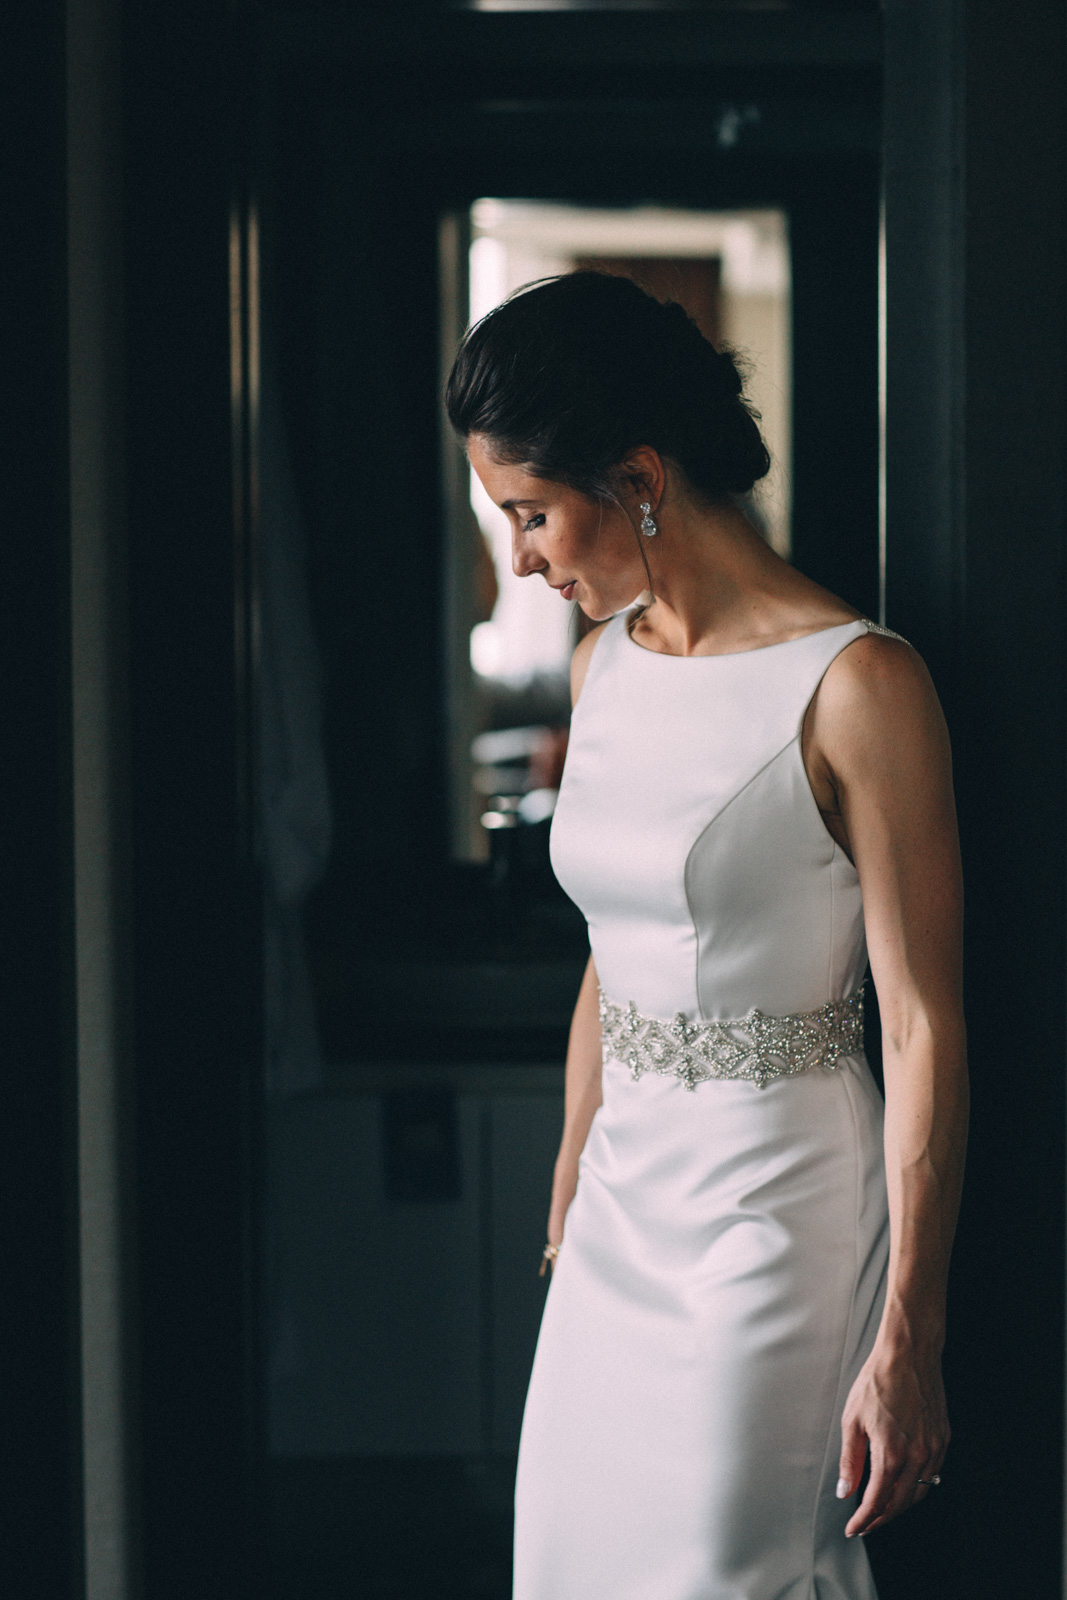 Malaparte-wedding-photography-Toronto-by-Sam-Wong-of-Visual-Cravings_21